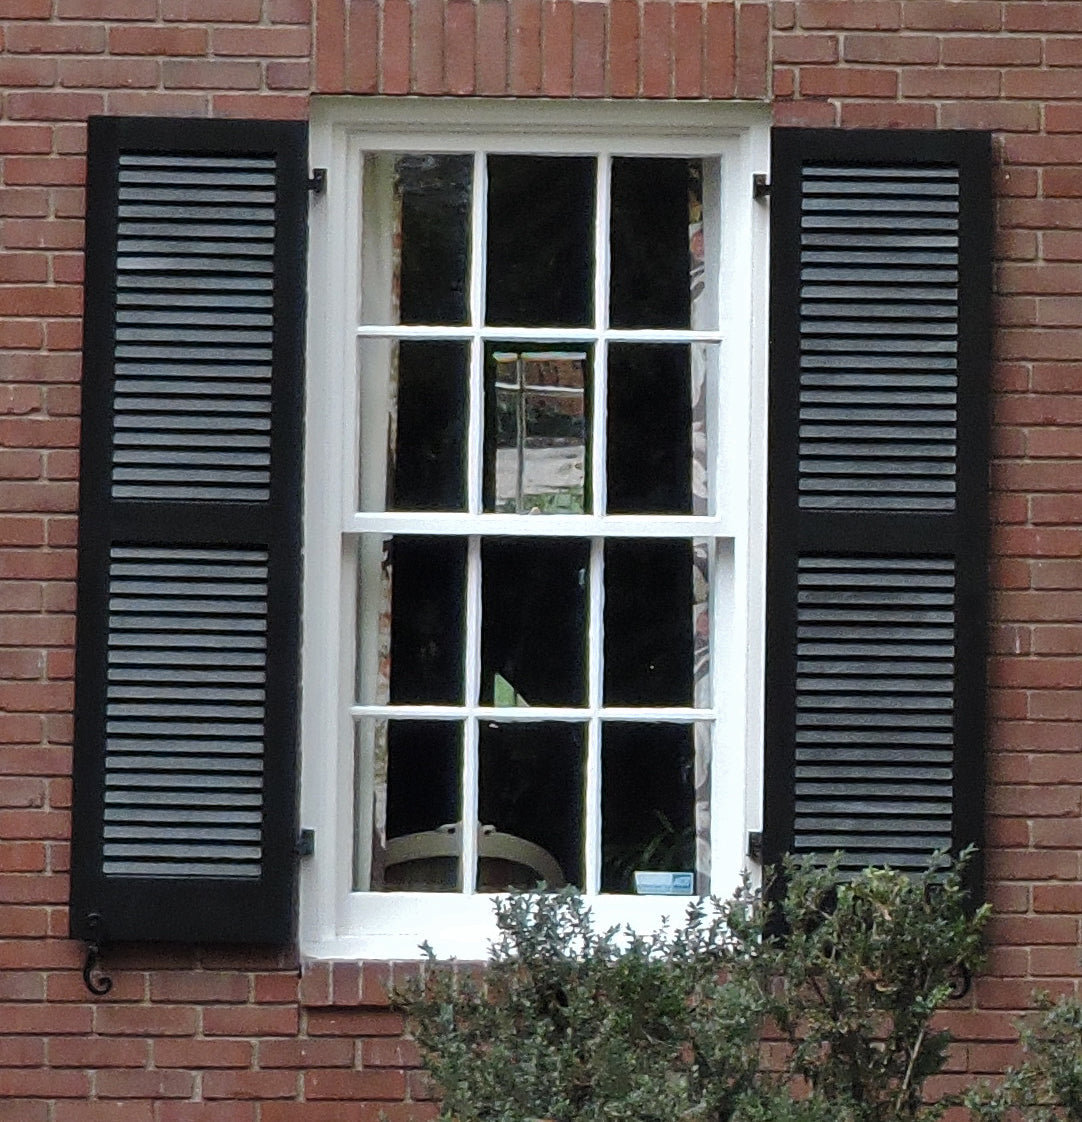 black louvered exterior window shutters on a brick house for brockwell incorporated's illustrated glossary of classical architectural terms